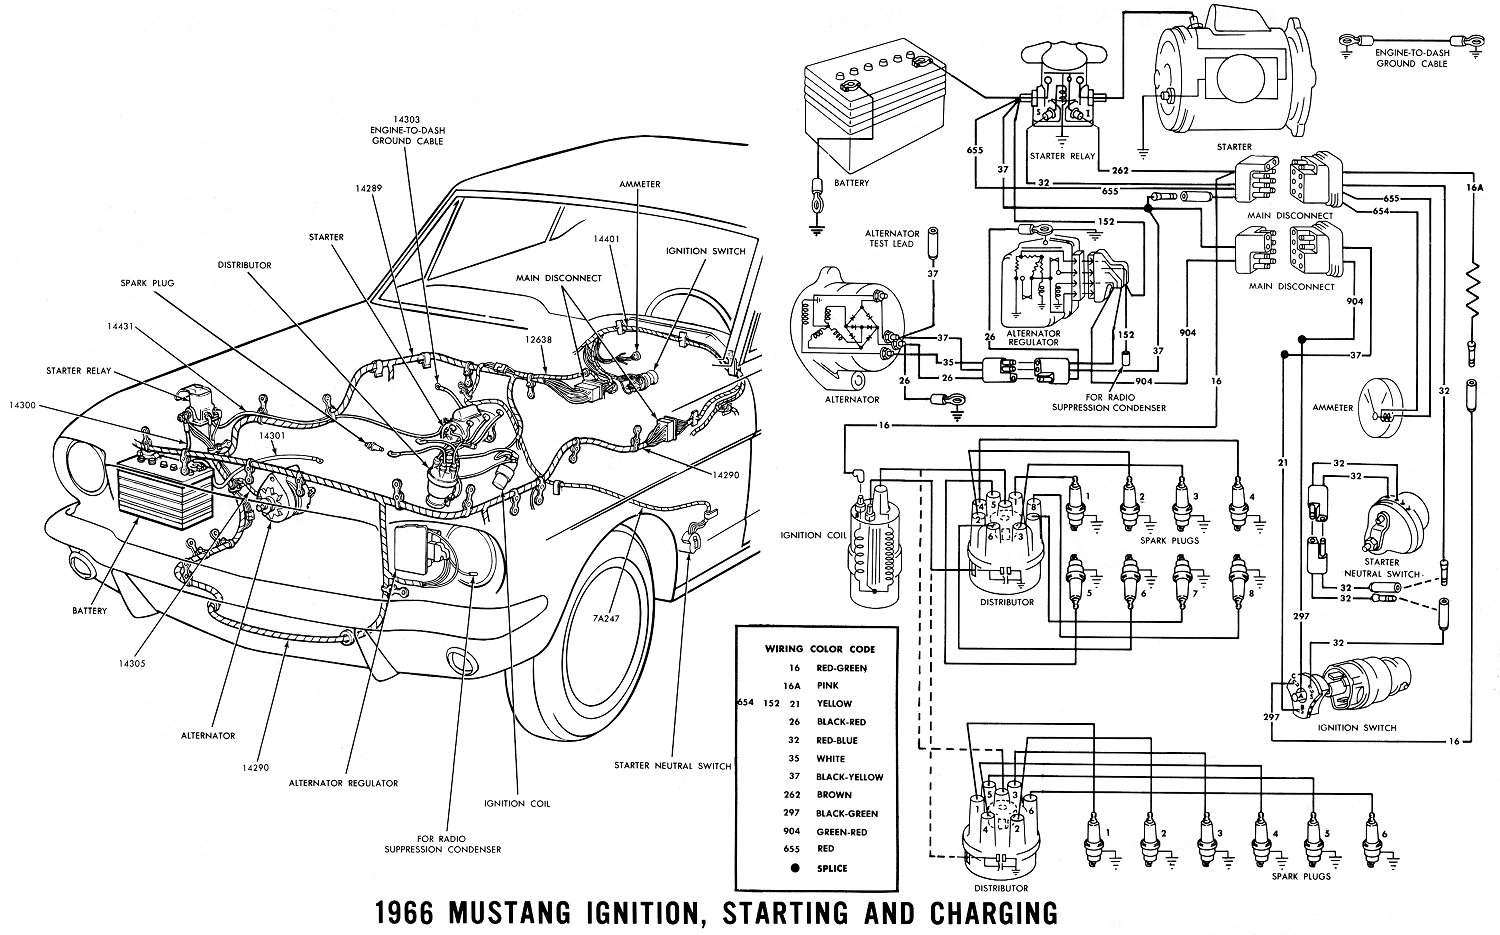 66ignit 1966 mustang wiring diagrams average joe restoration ignition switch diagram at alyssarenee.co